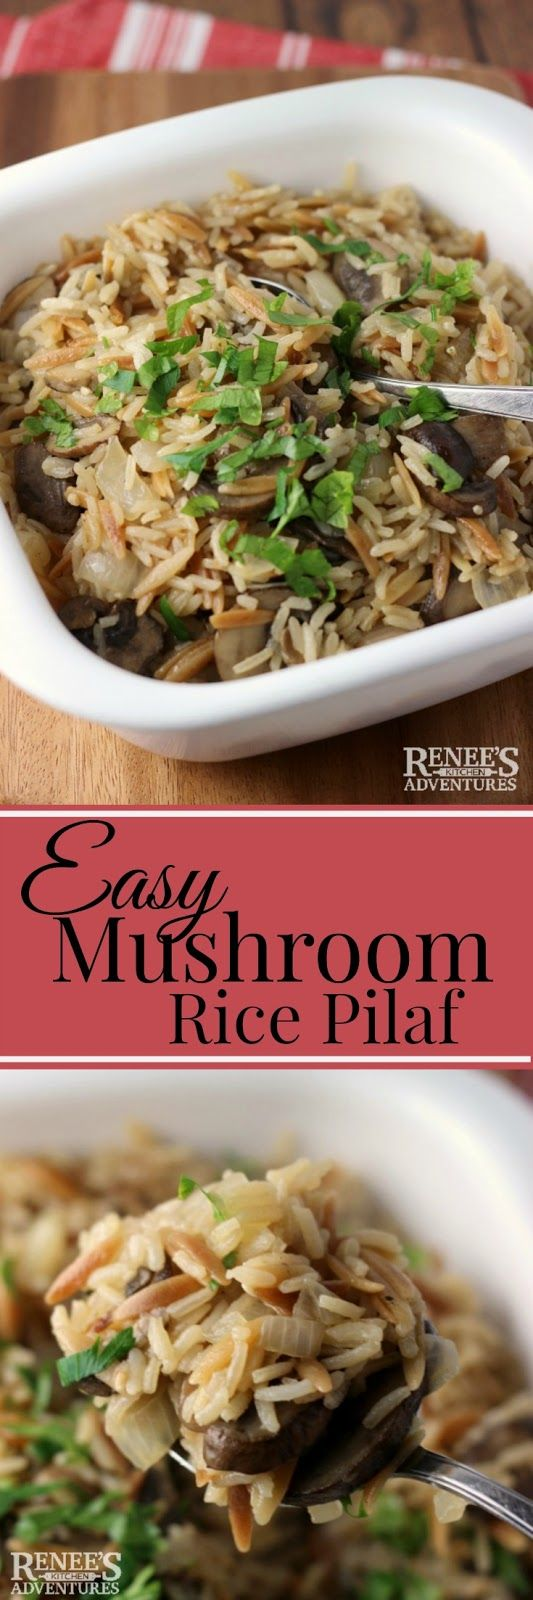 Easy Mushroom Rice Pilaf Kitchens, Side dish recipes and